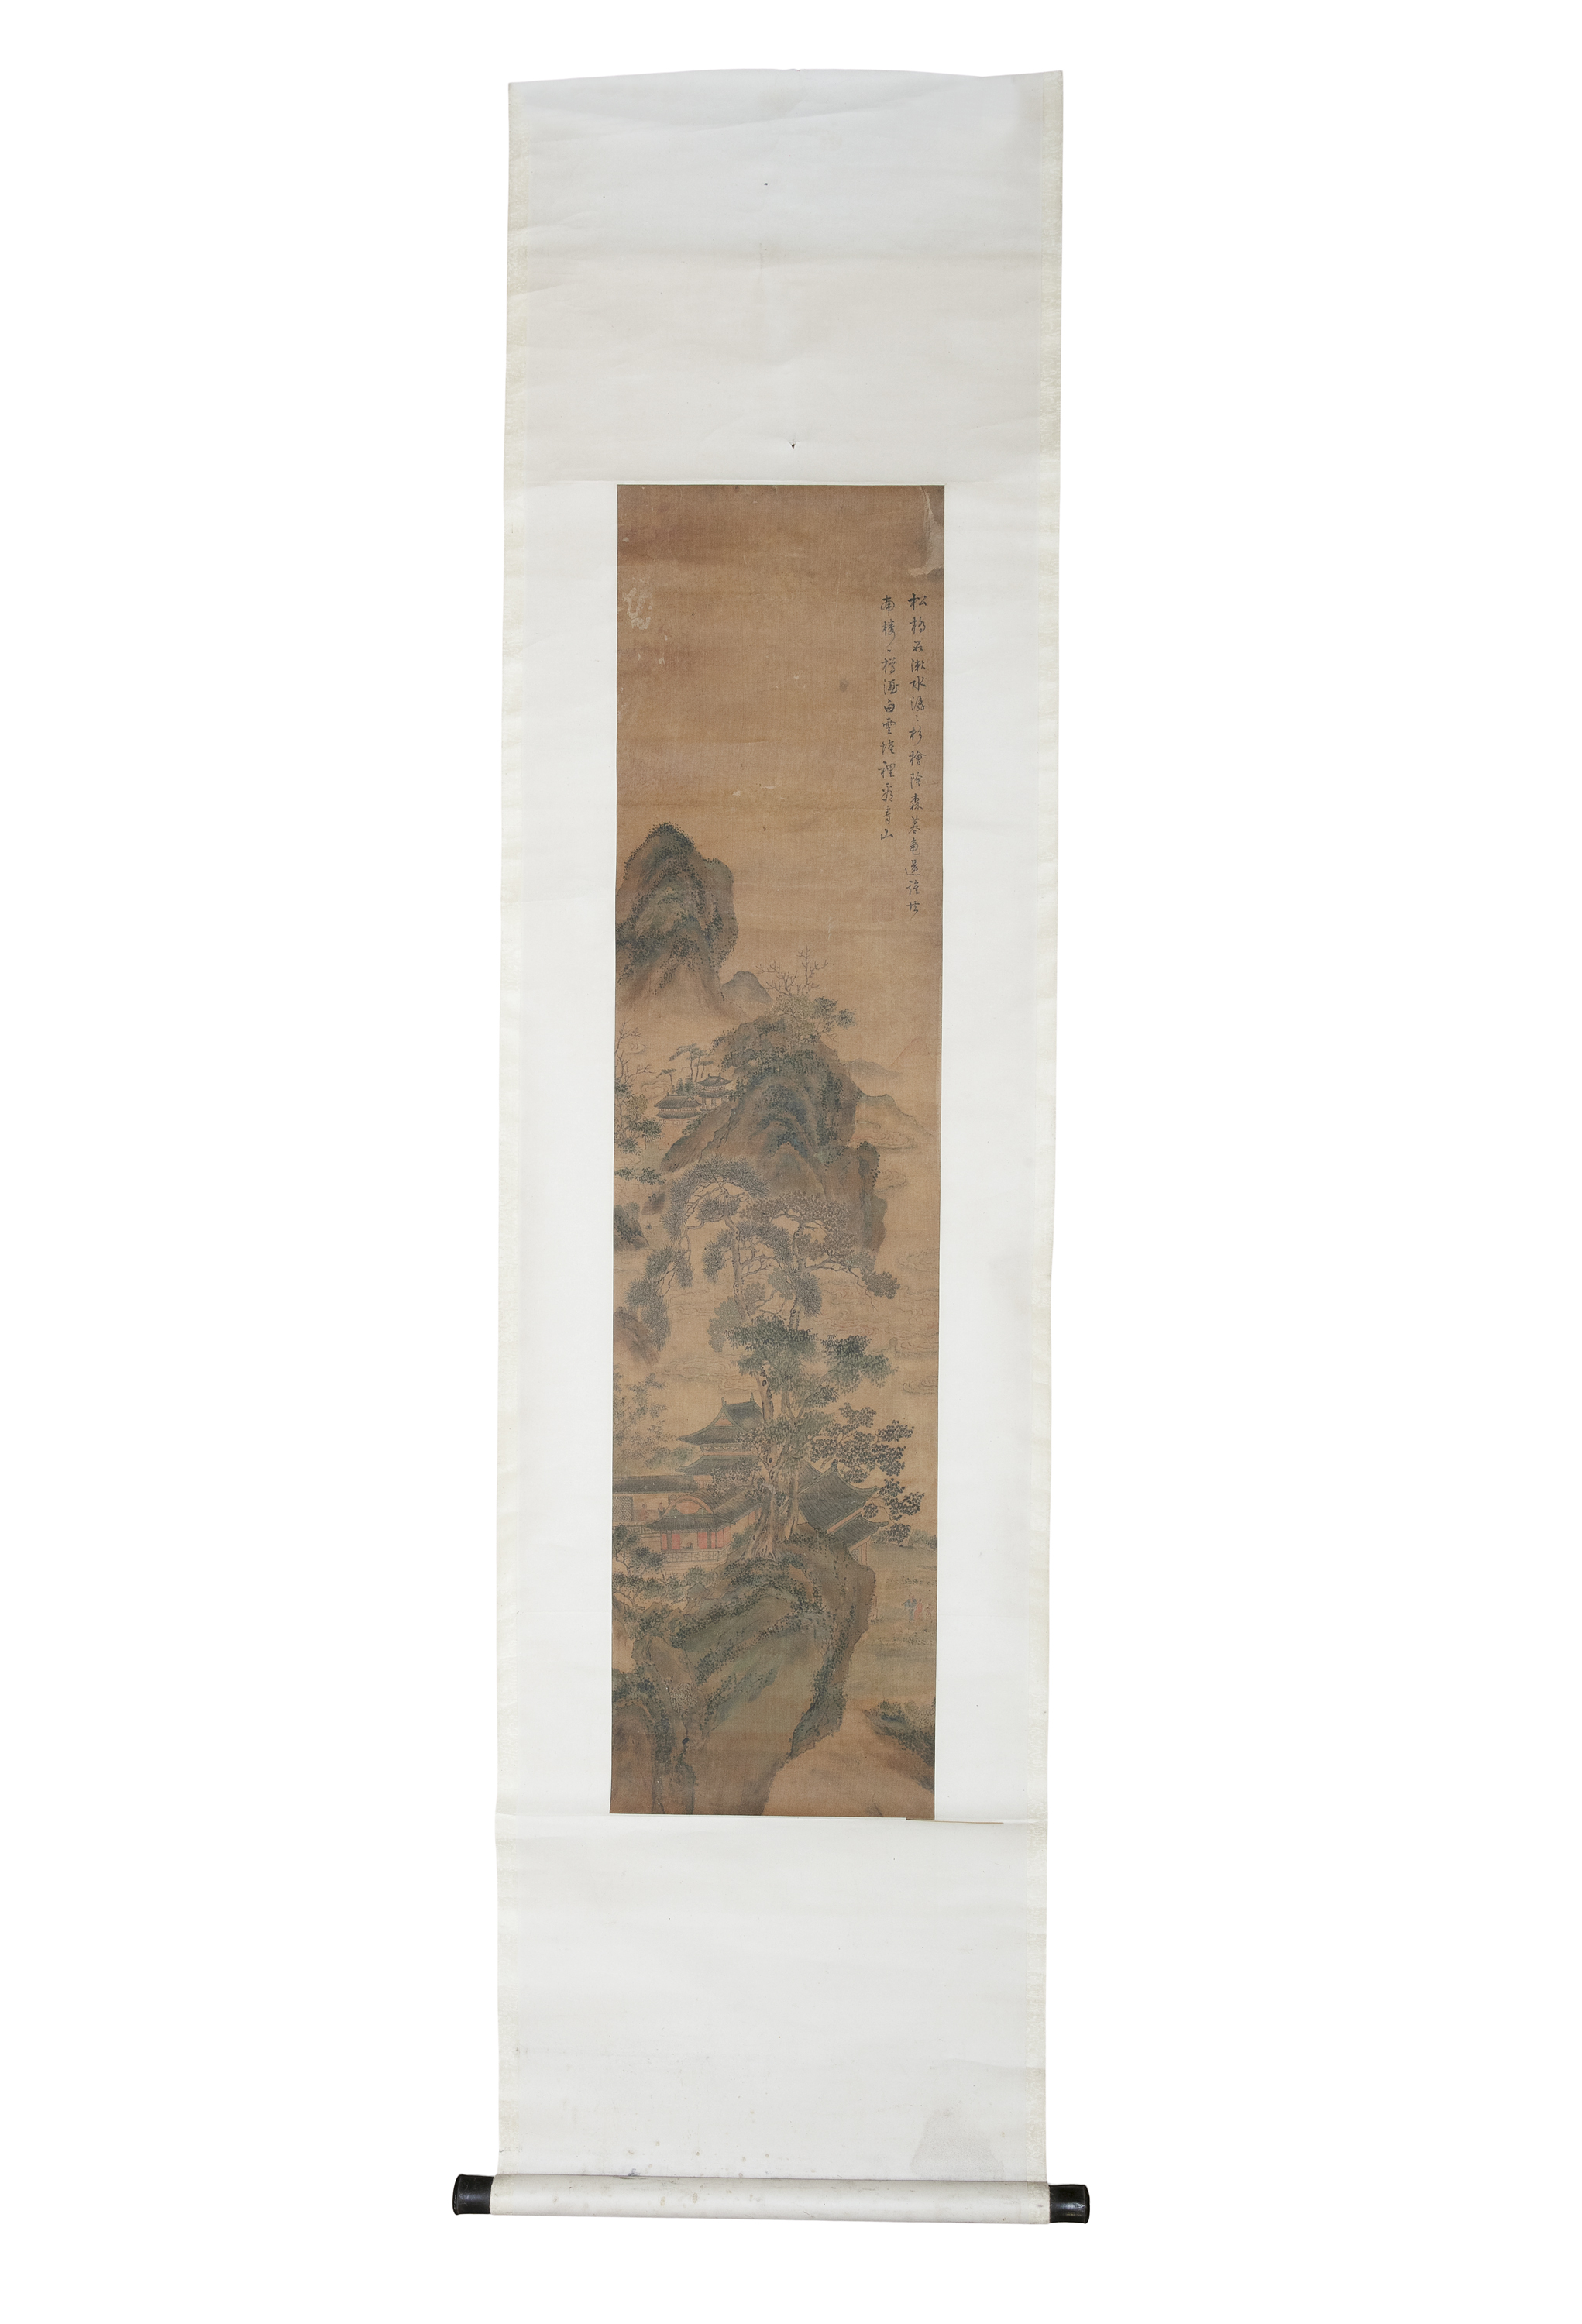 CHINESE SCHOOL, AFTER PURU 溥儒 ALSO KNOWN AS PU XINYU 溥心畬 (1896-1963) Landscape with a pavilion and - Image 4 of 7